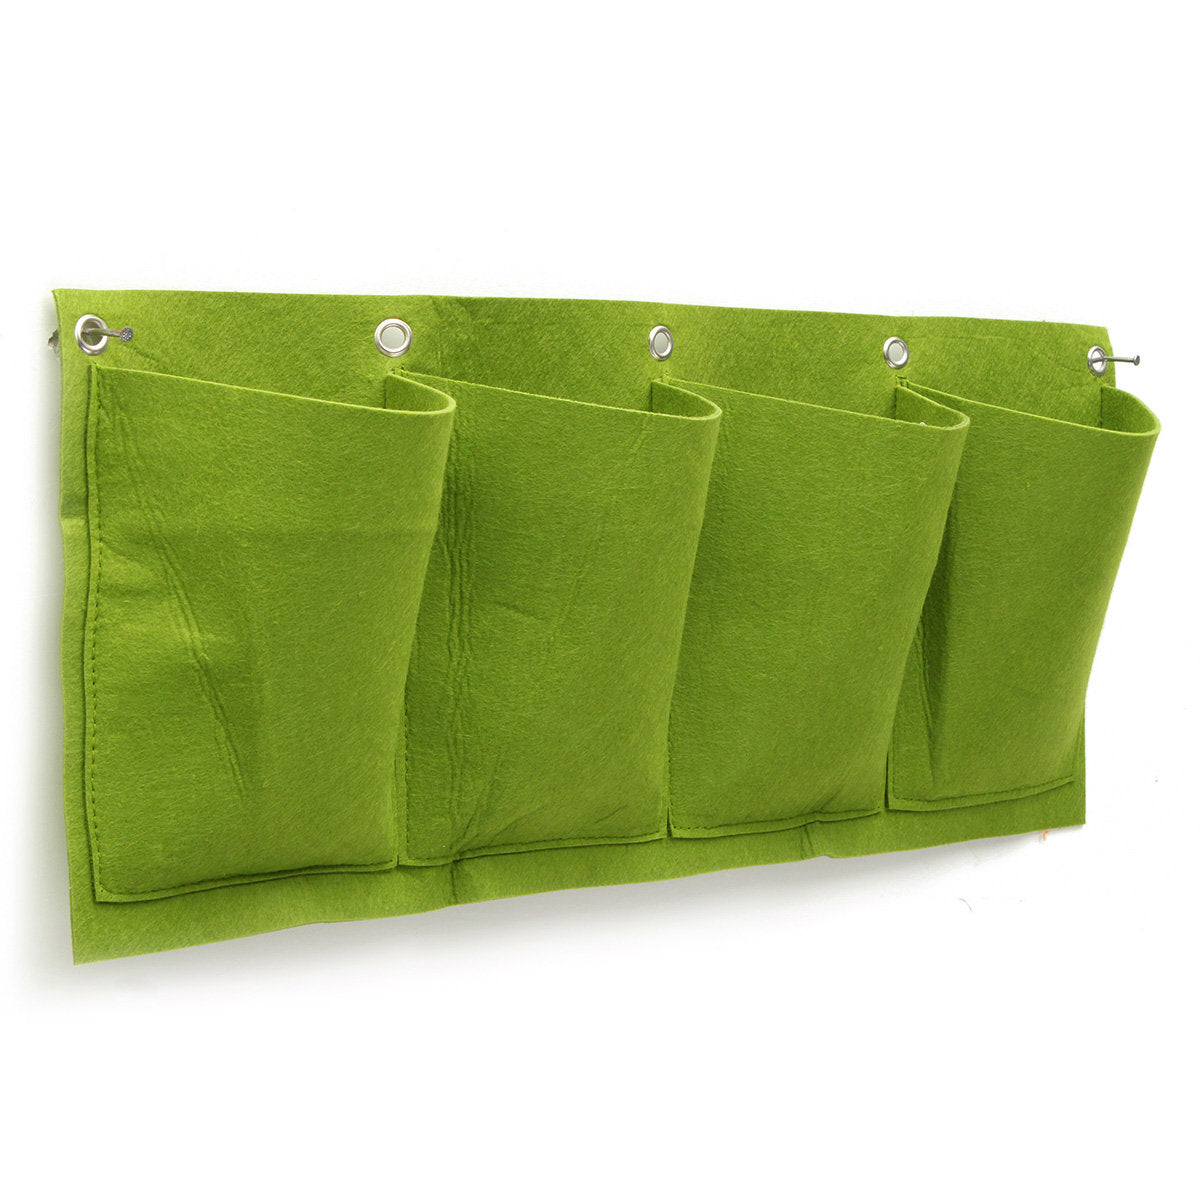 4 Pockets Wall Planter Growing Bags Planting Bags Garden Vertical Gardening Hanging Wall Seedling